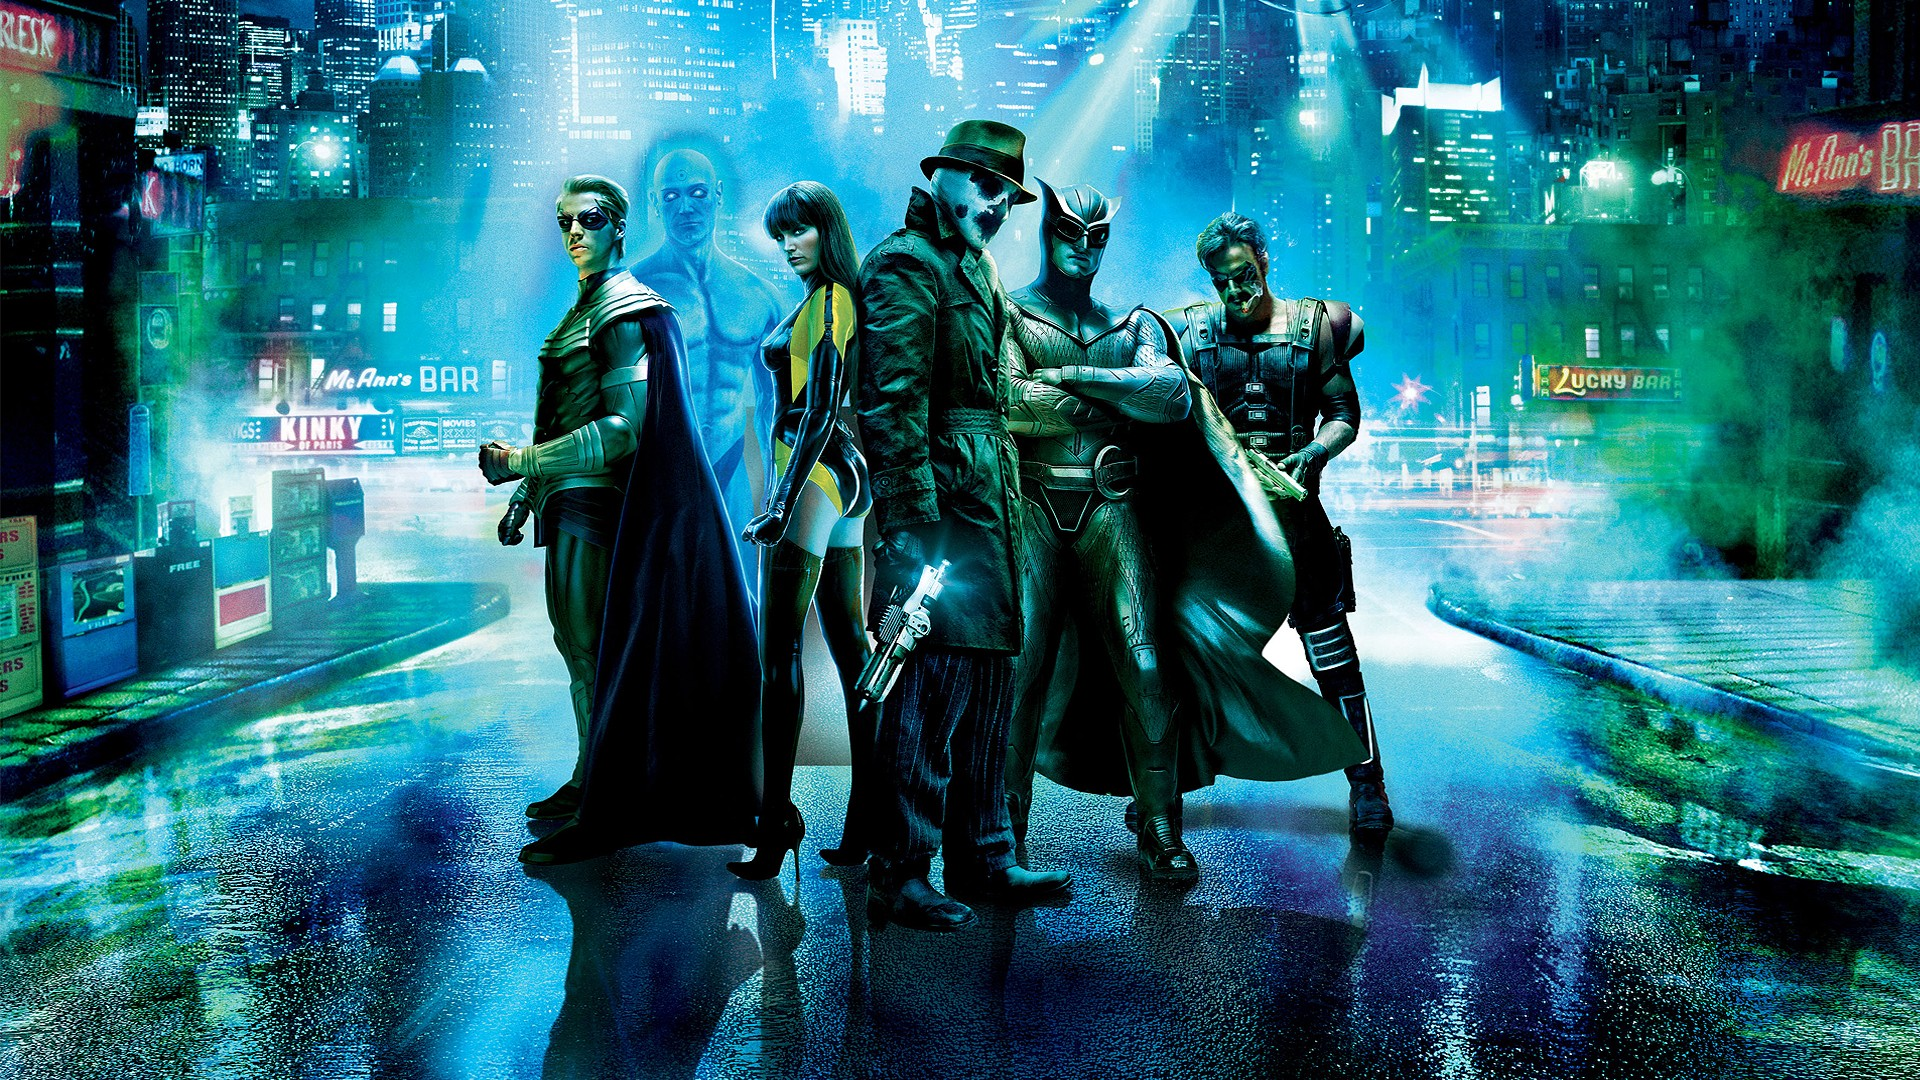 watchmen2-watchmen-movie-why-we-need-more-like-it.jpeg